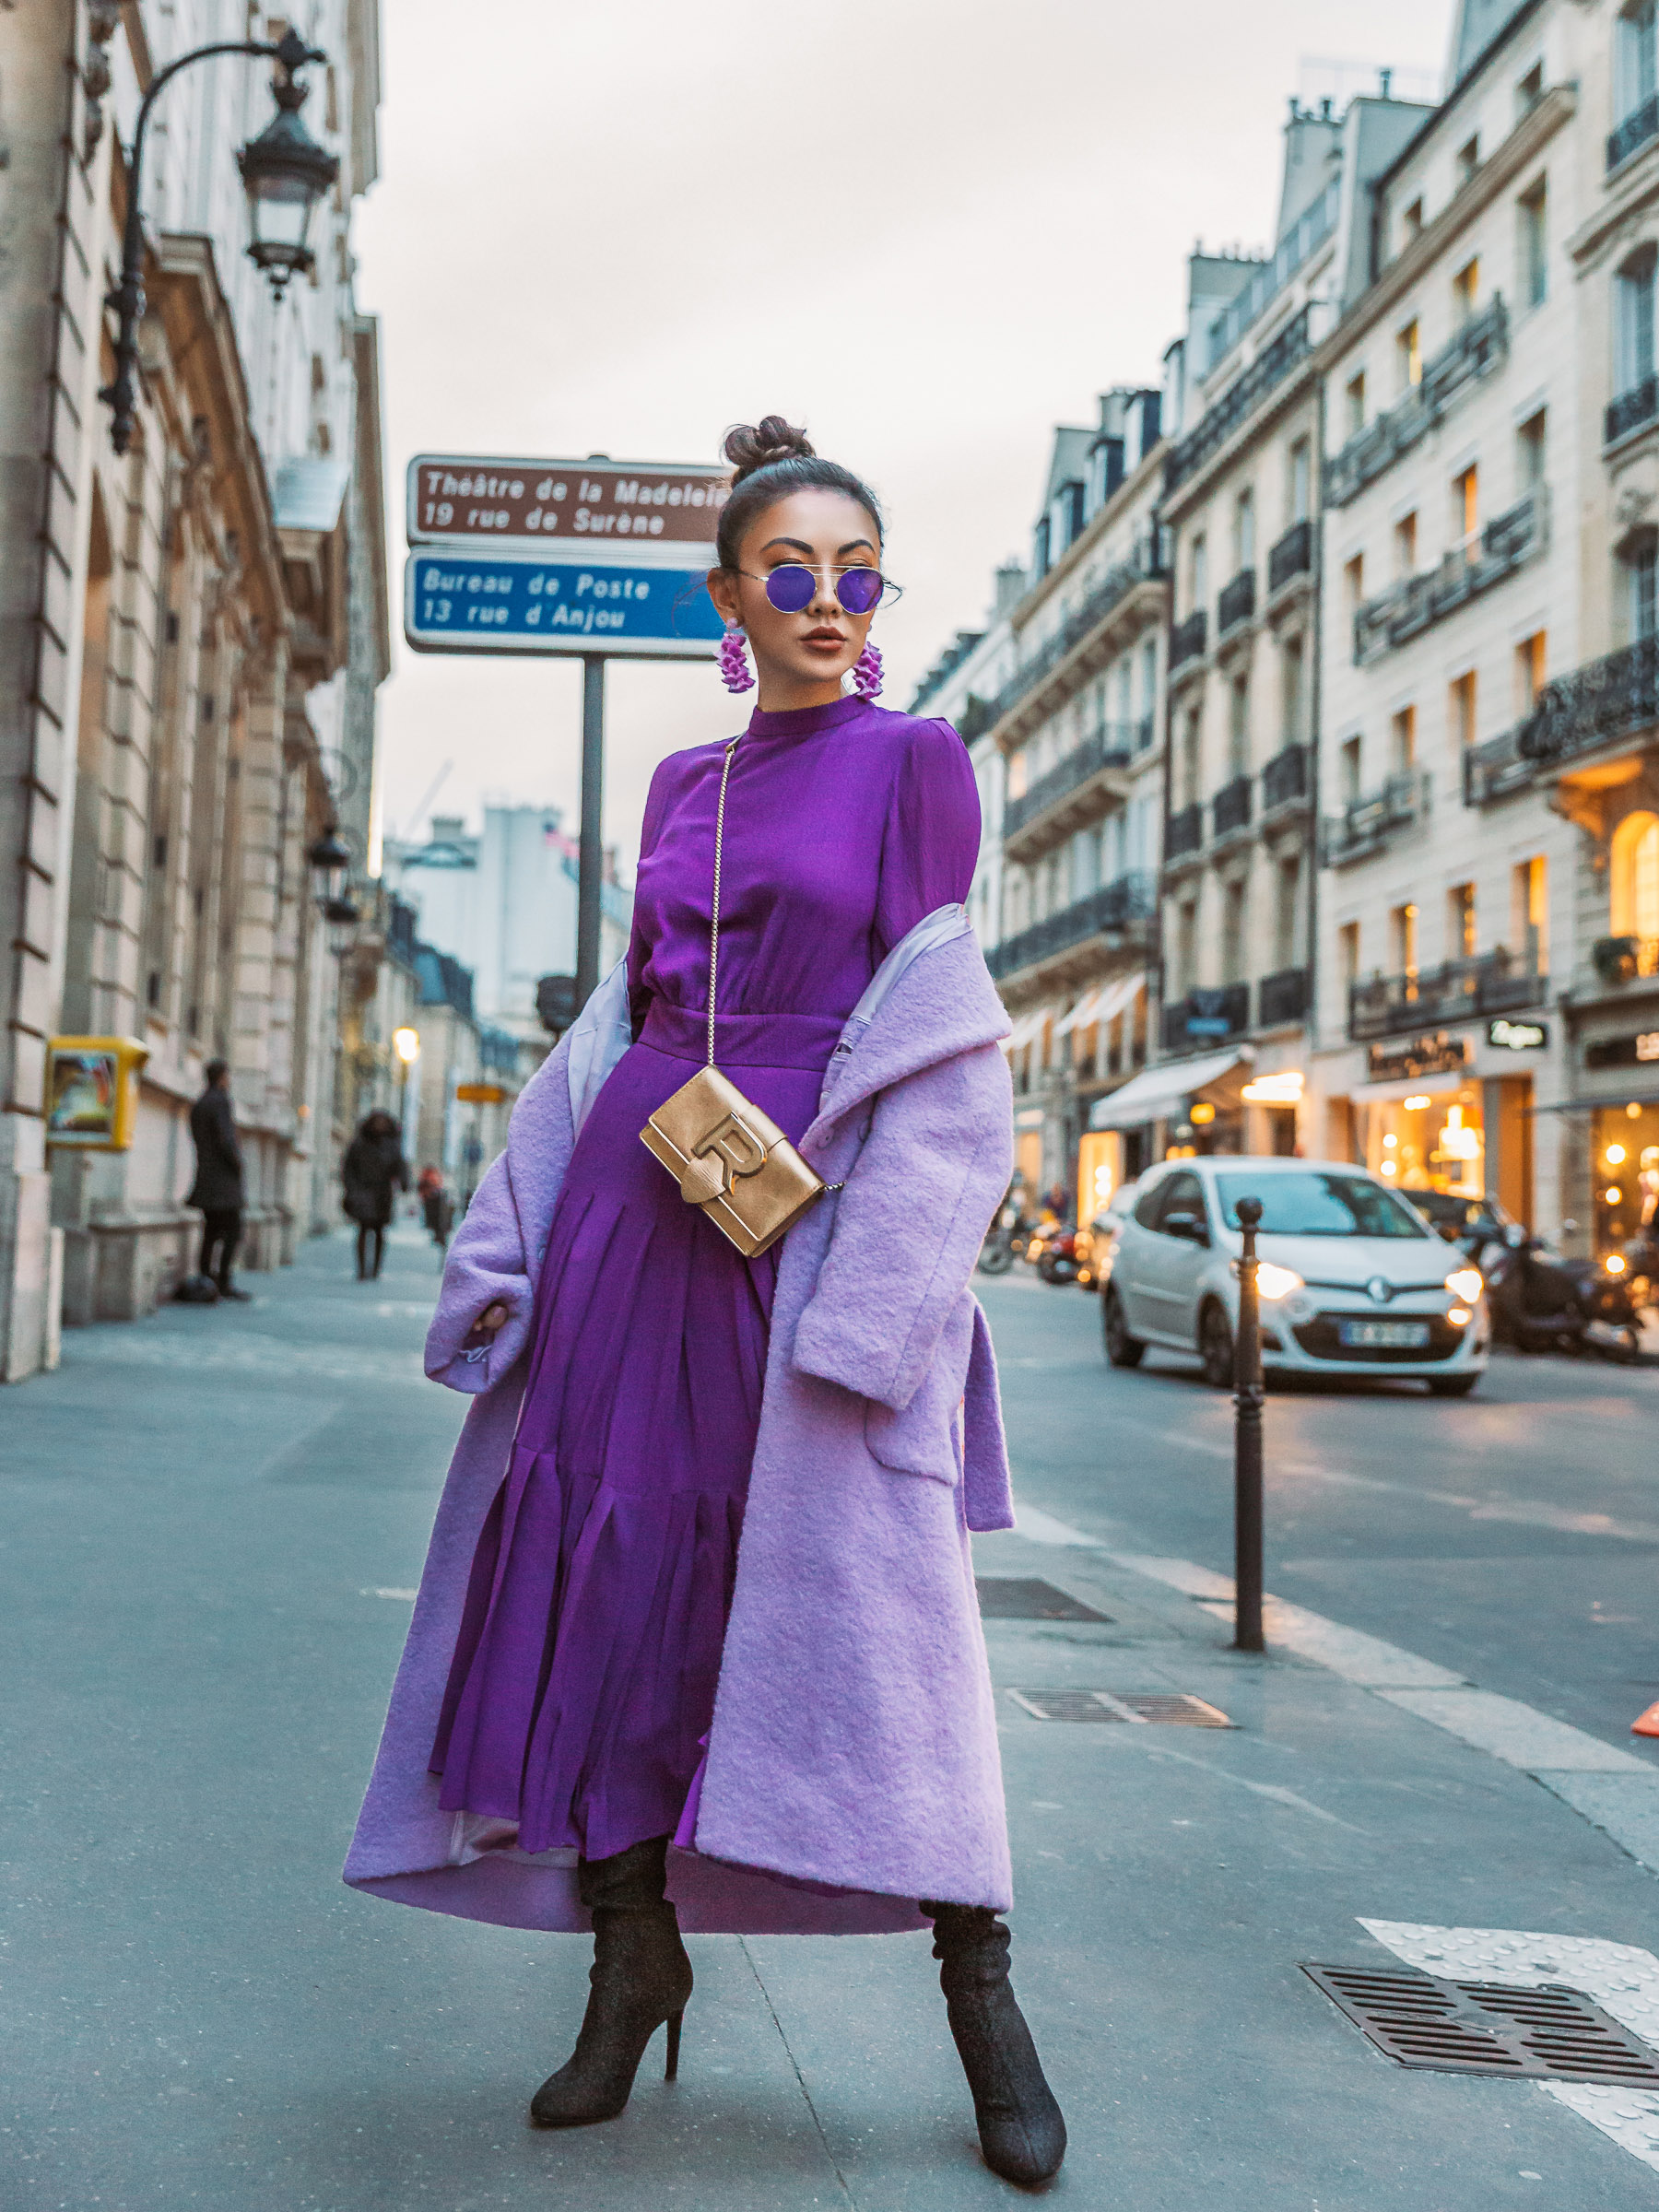 Guide to Wearing Color For Spring - ultra violet outfit, all purple fashion // NotJessFashion.com